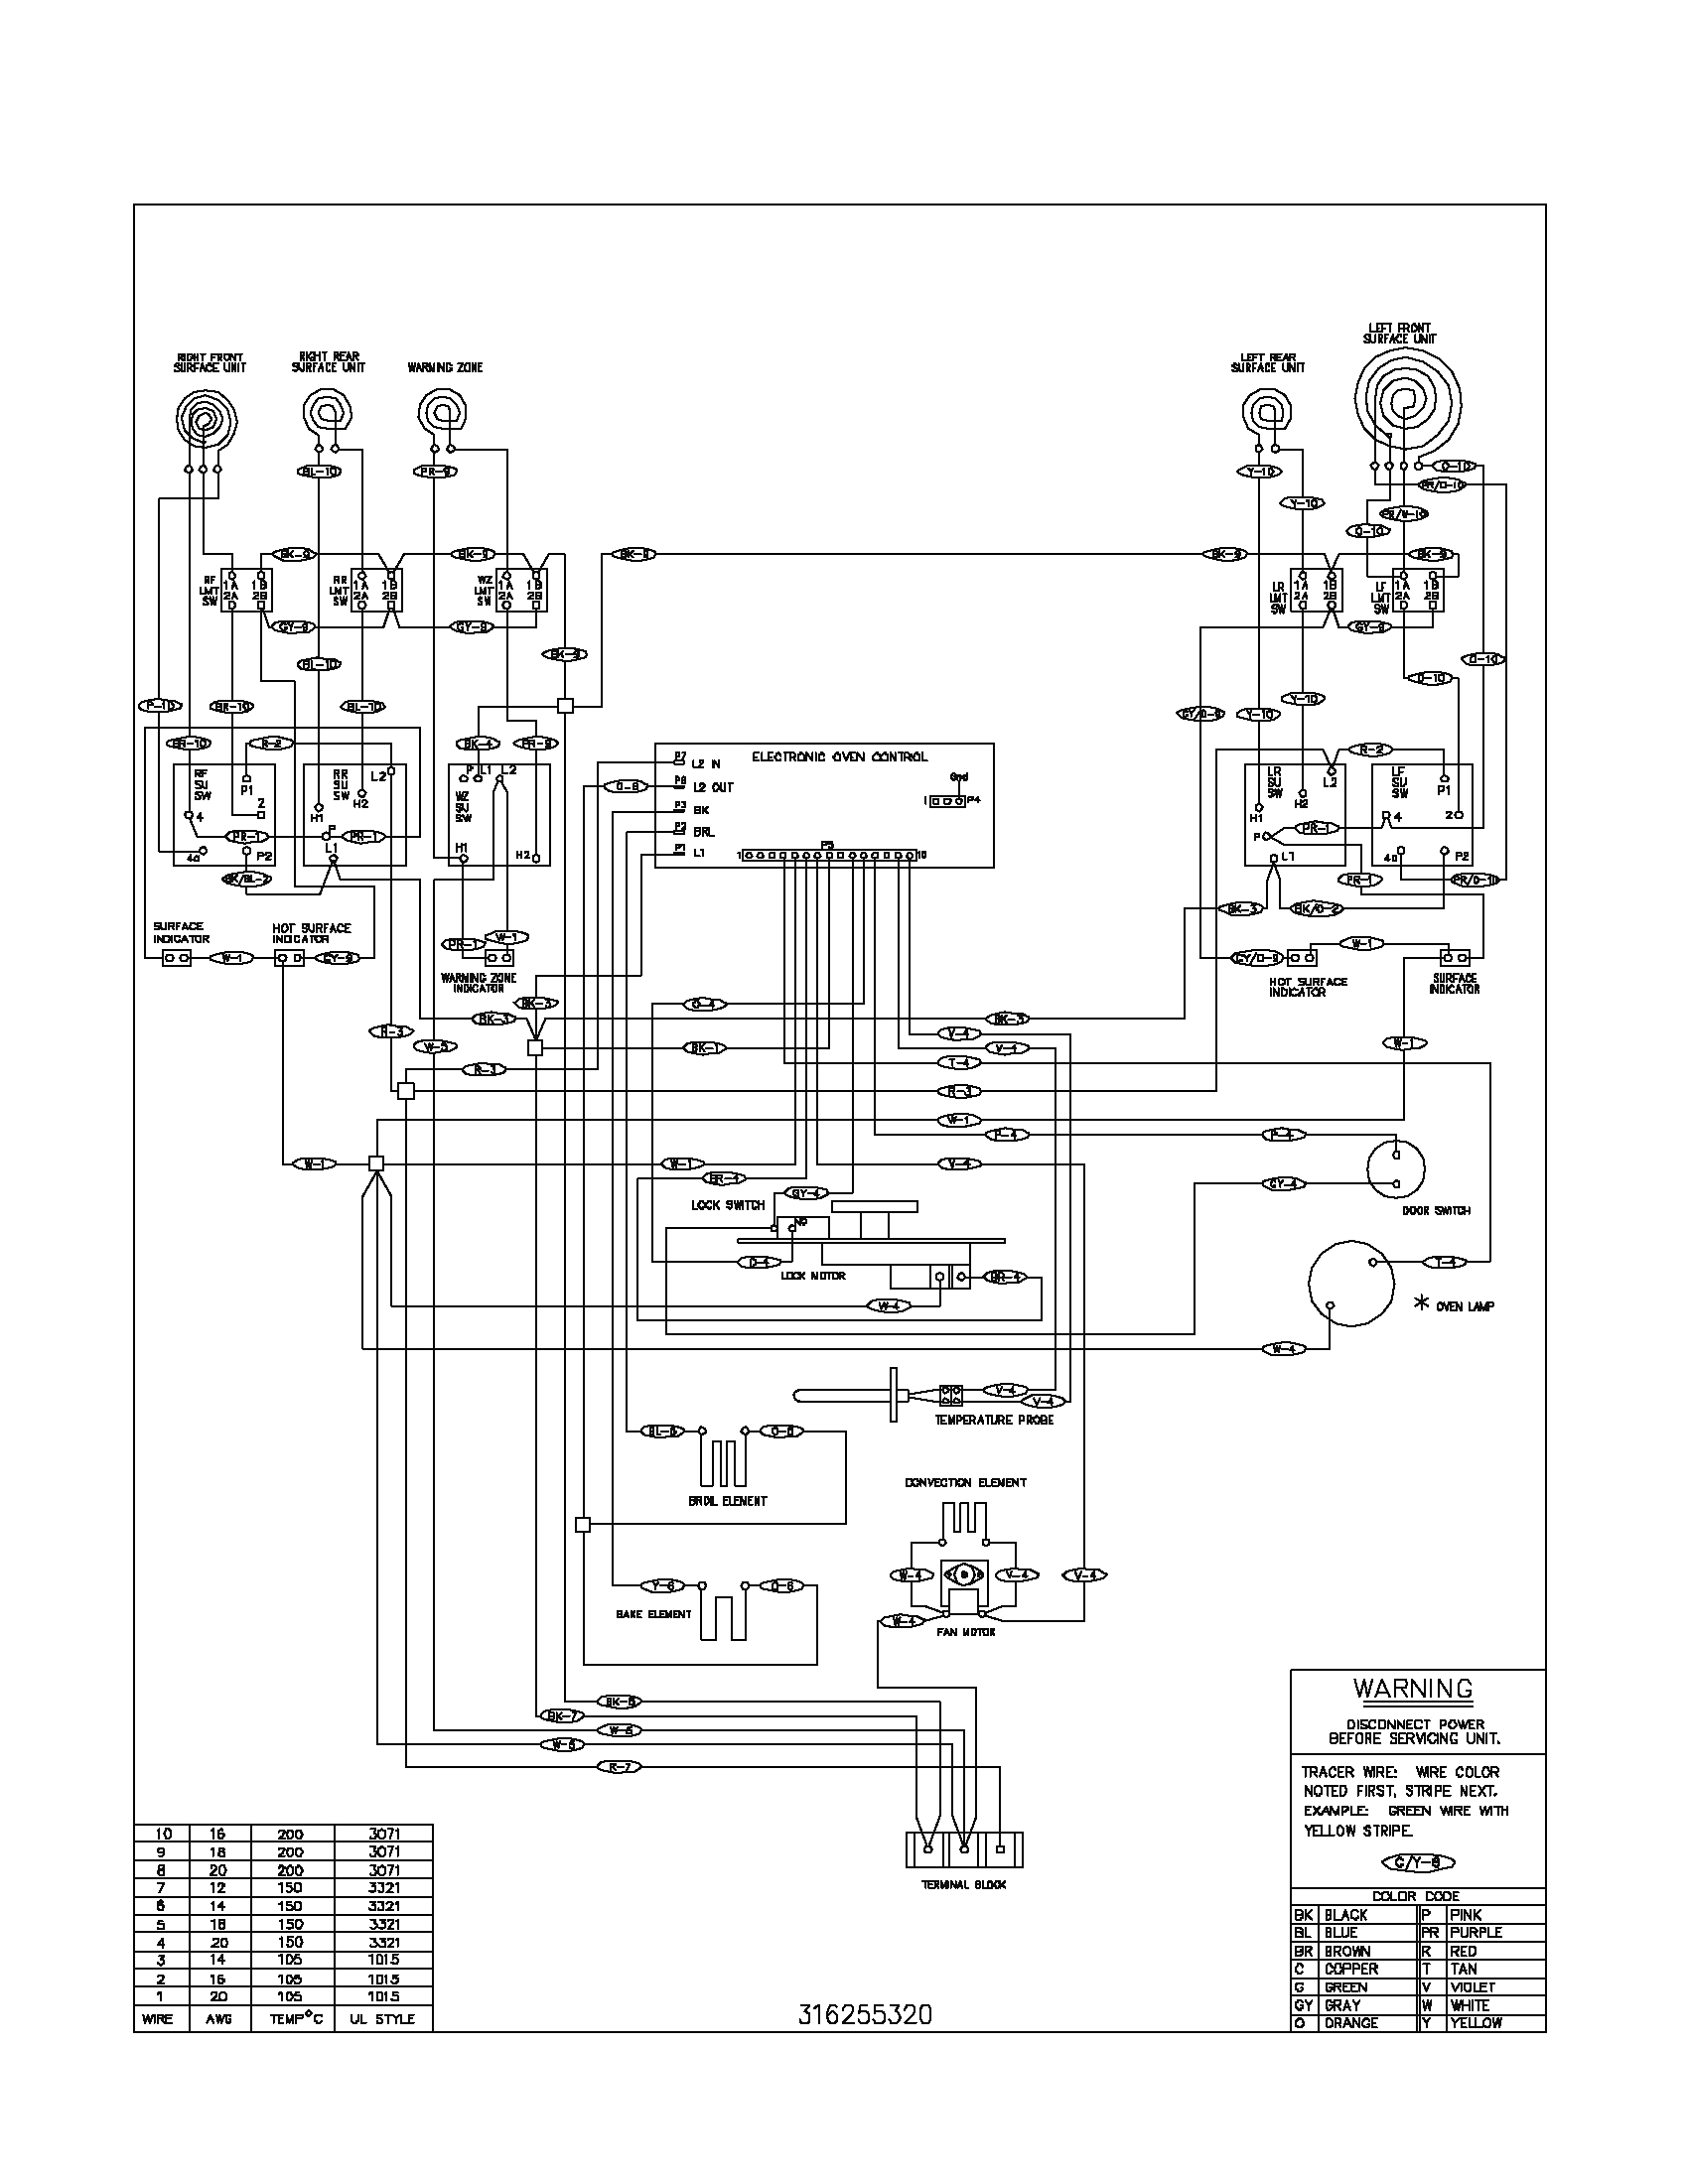 hobart wire diagrams wiring schematic diagram 60 lautmaschine com Electric Oven Wiring Diagram for LG